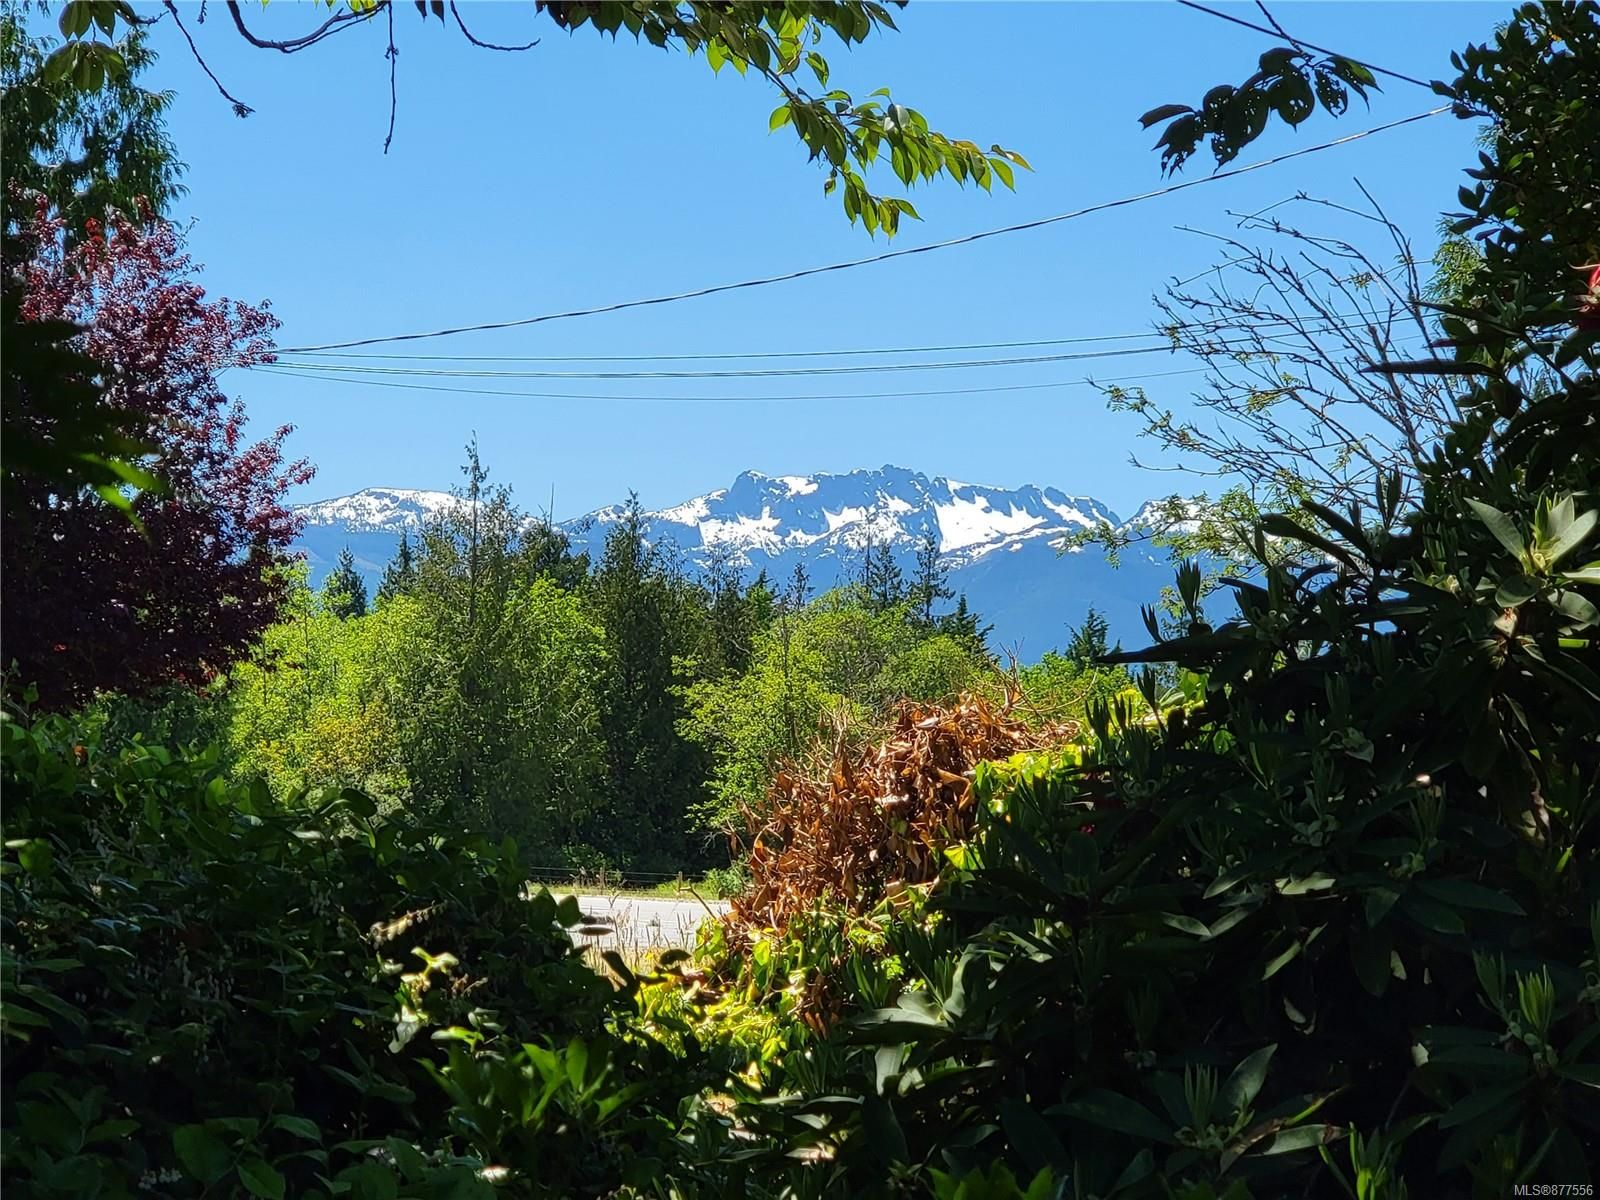 Main Photo: 763 Newcastle Ave in : PQ Parksville House for sale (Parksville/Qualicum)  : MLS®# 877556